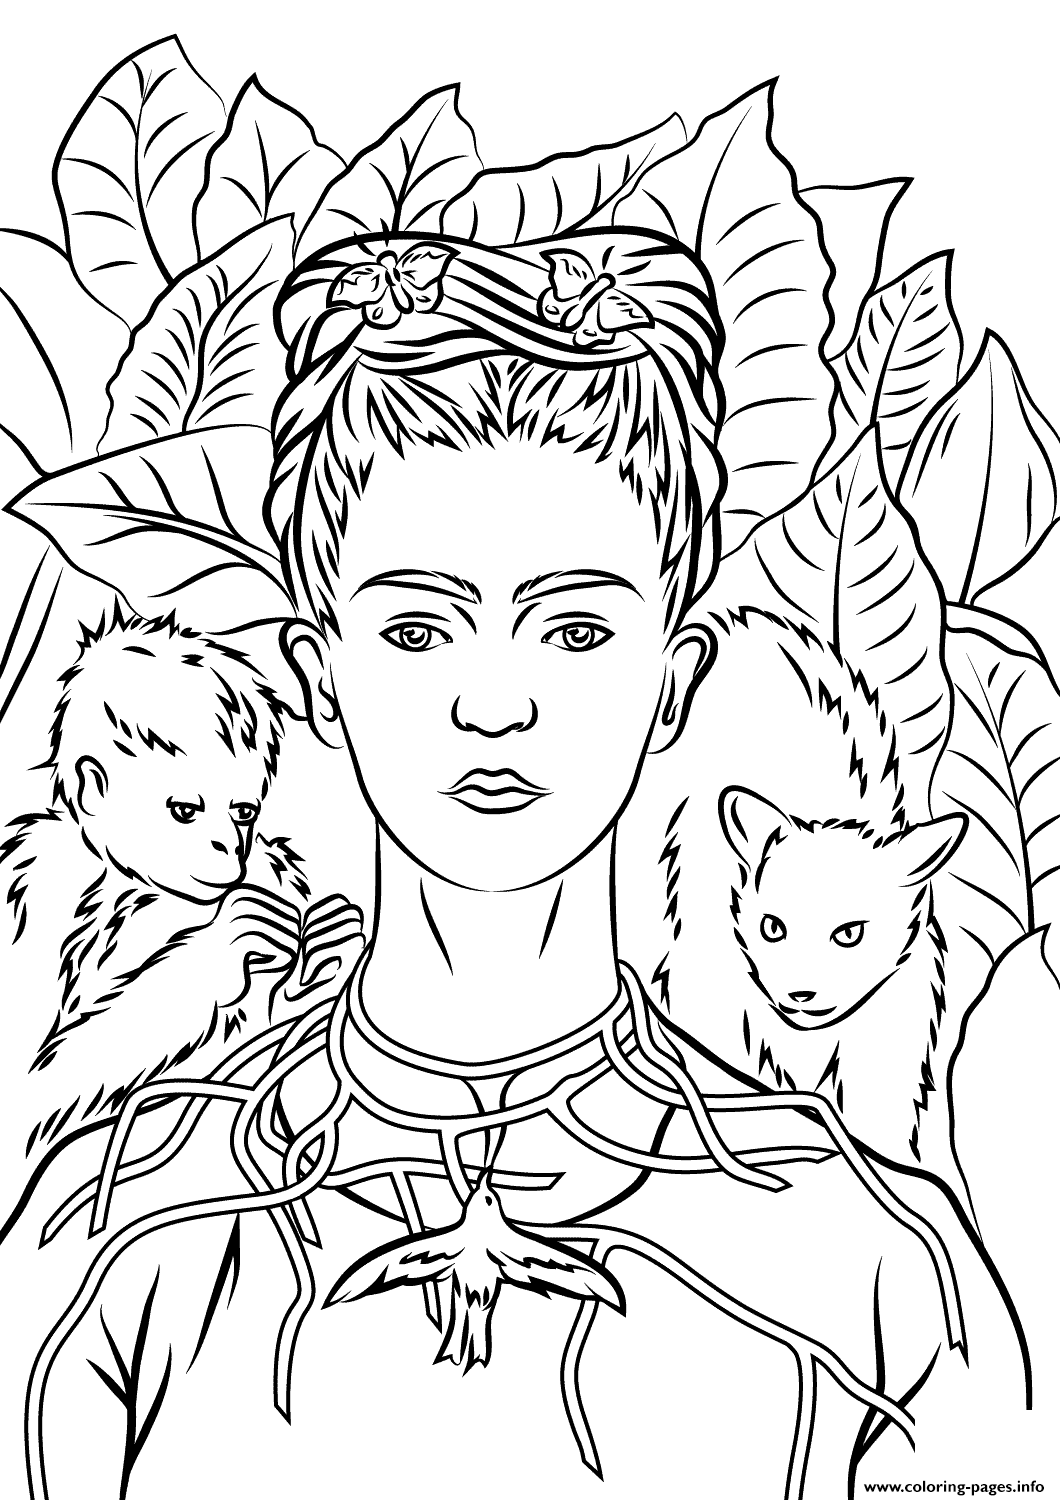 Print self portrait with necklace of thorns by frida kahlo coloring